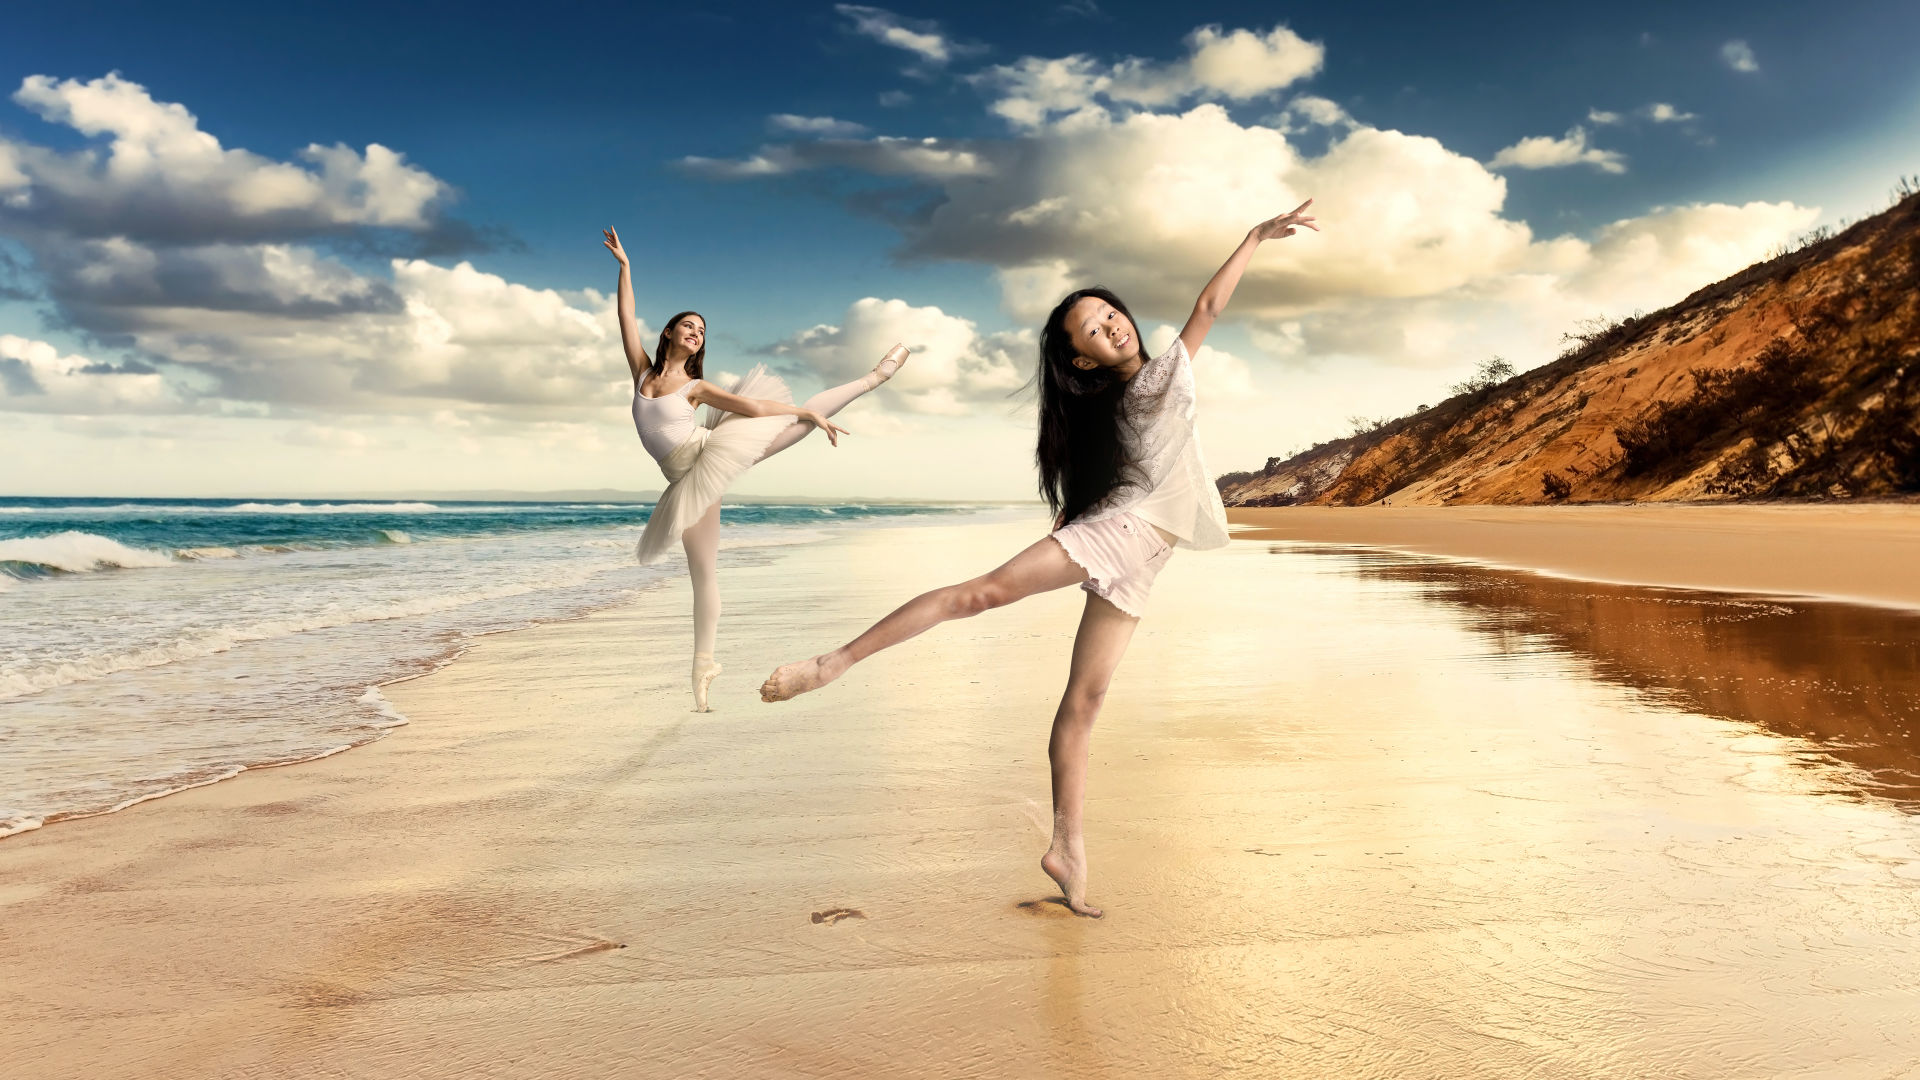 Finalists announced for ballet competition